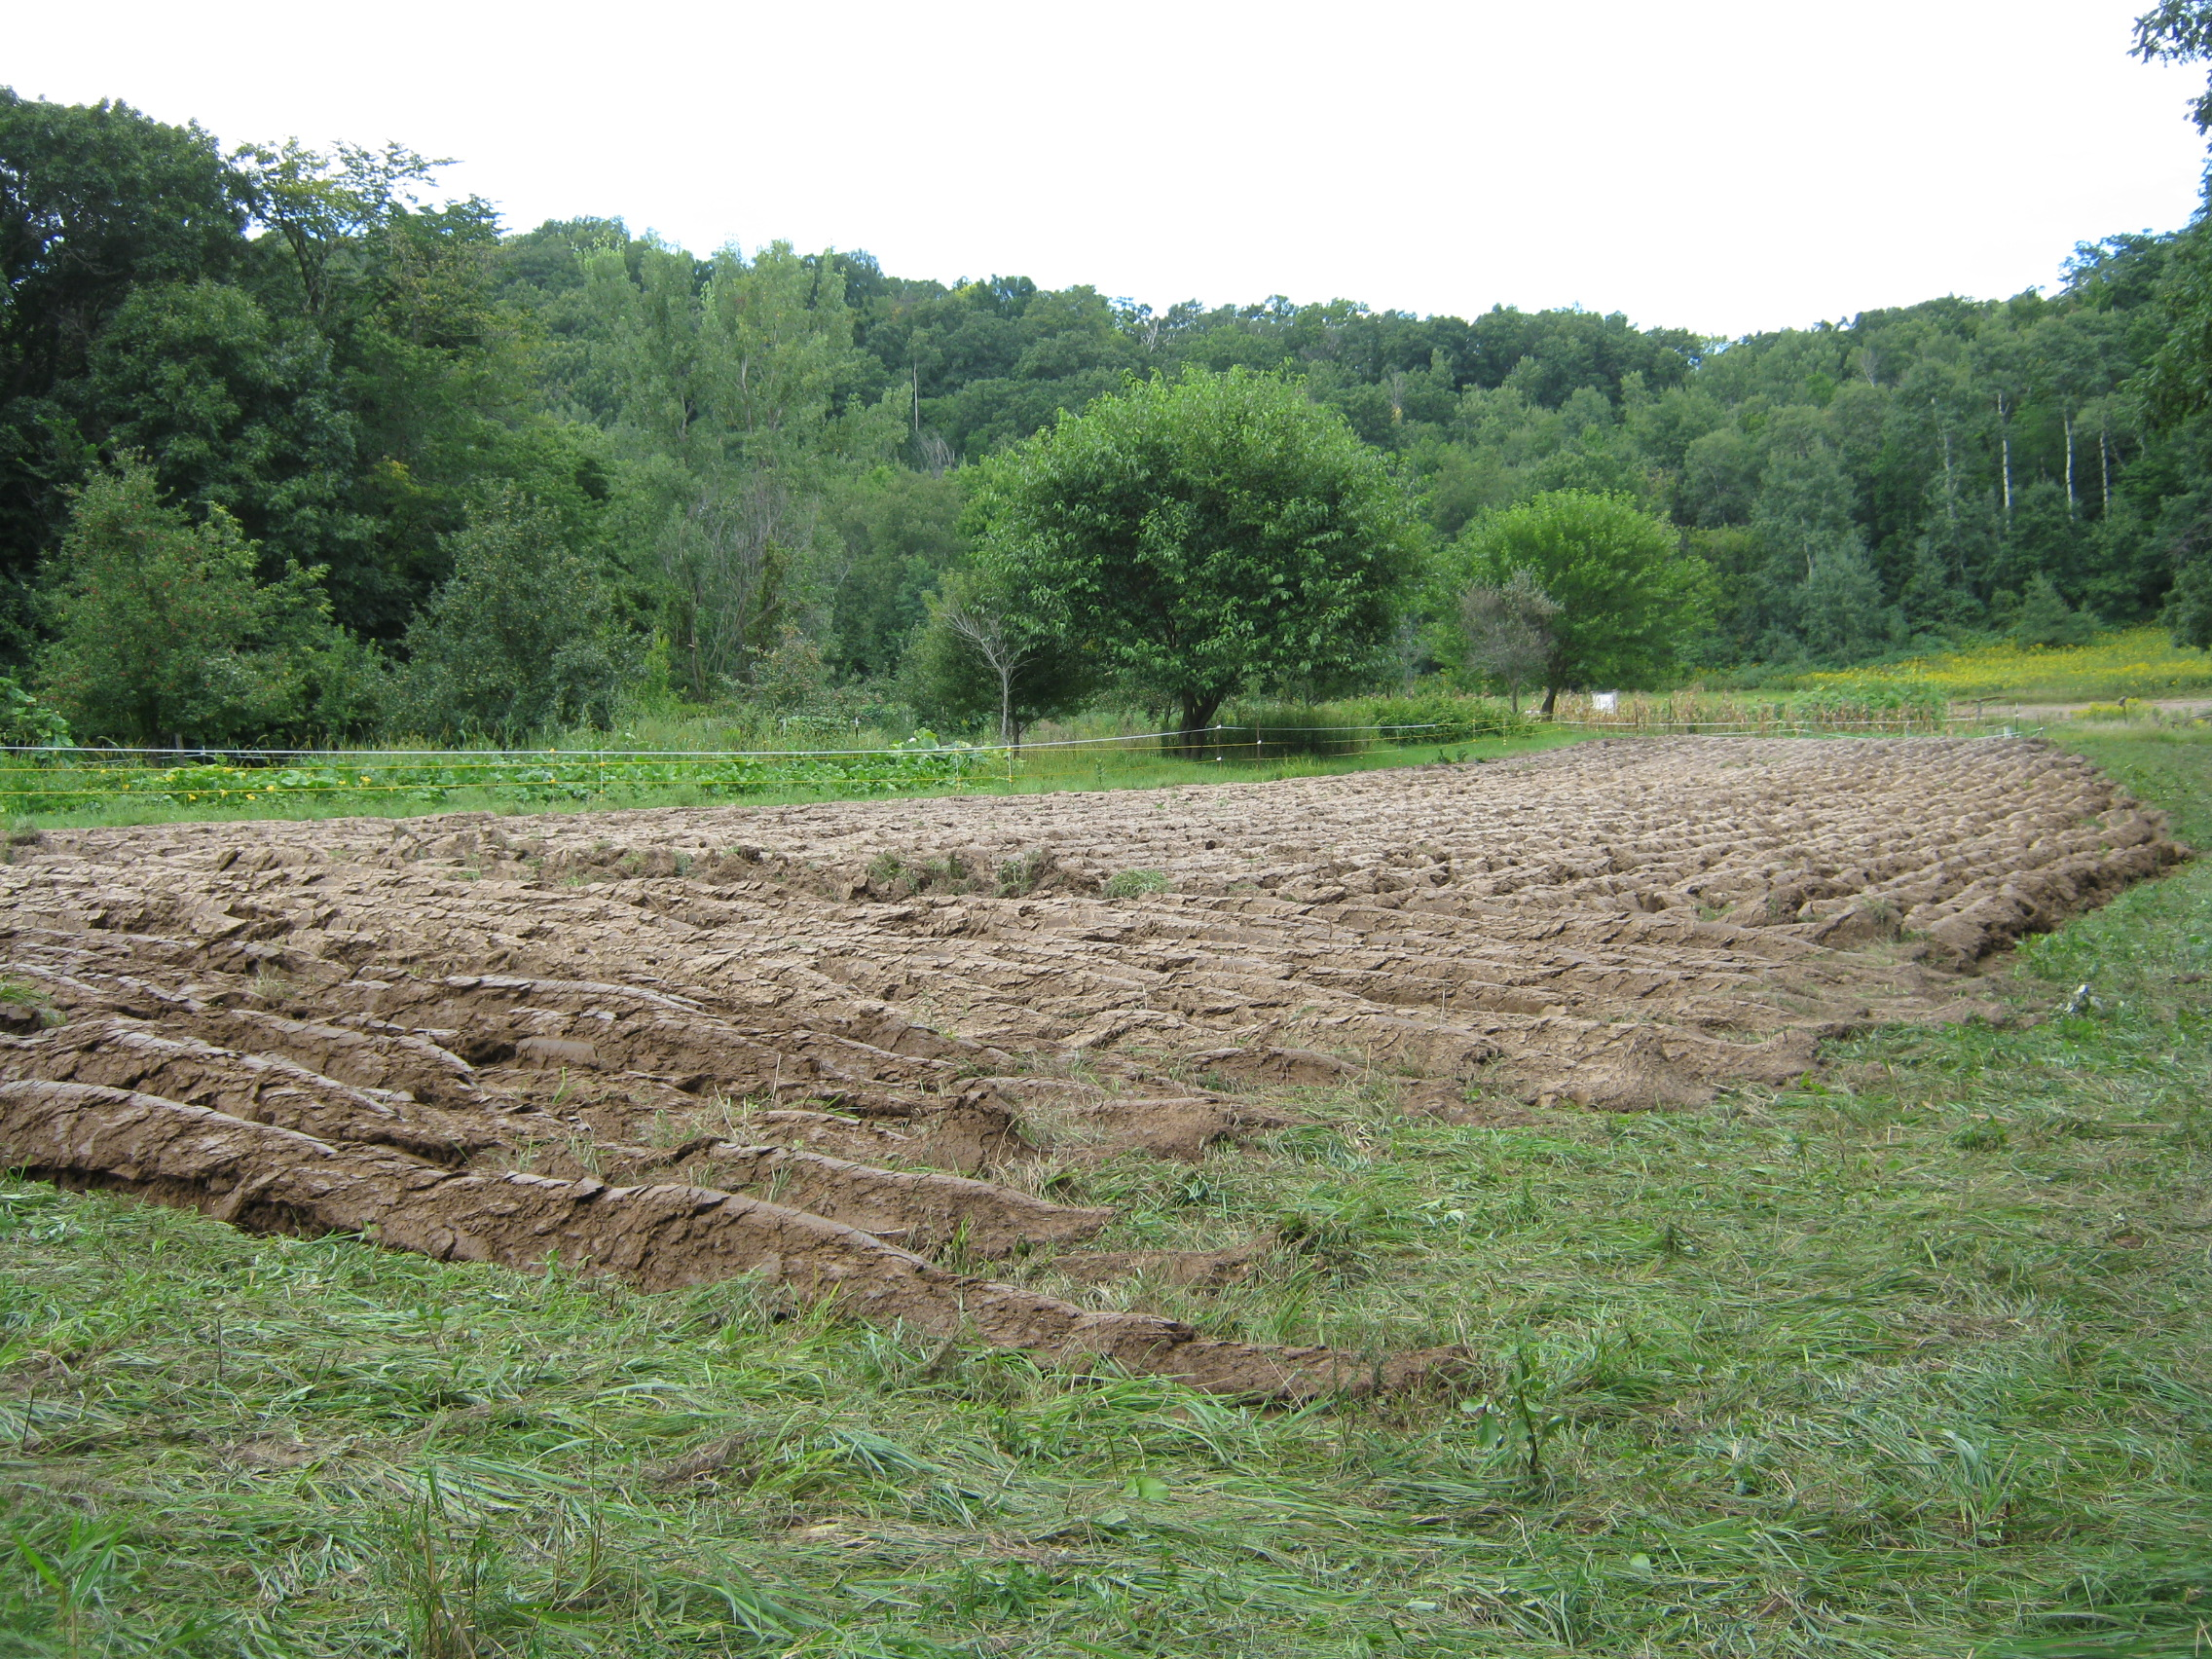 Avodah farm is located in the hills of Pepin County, WI